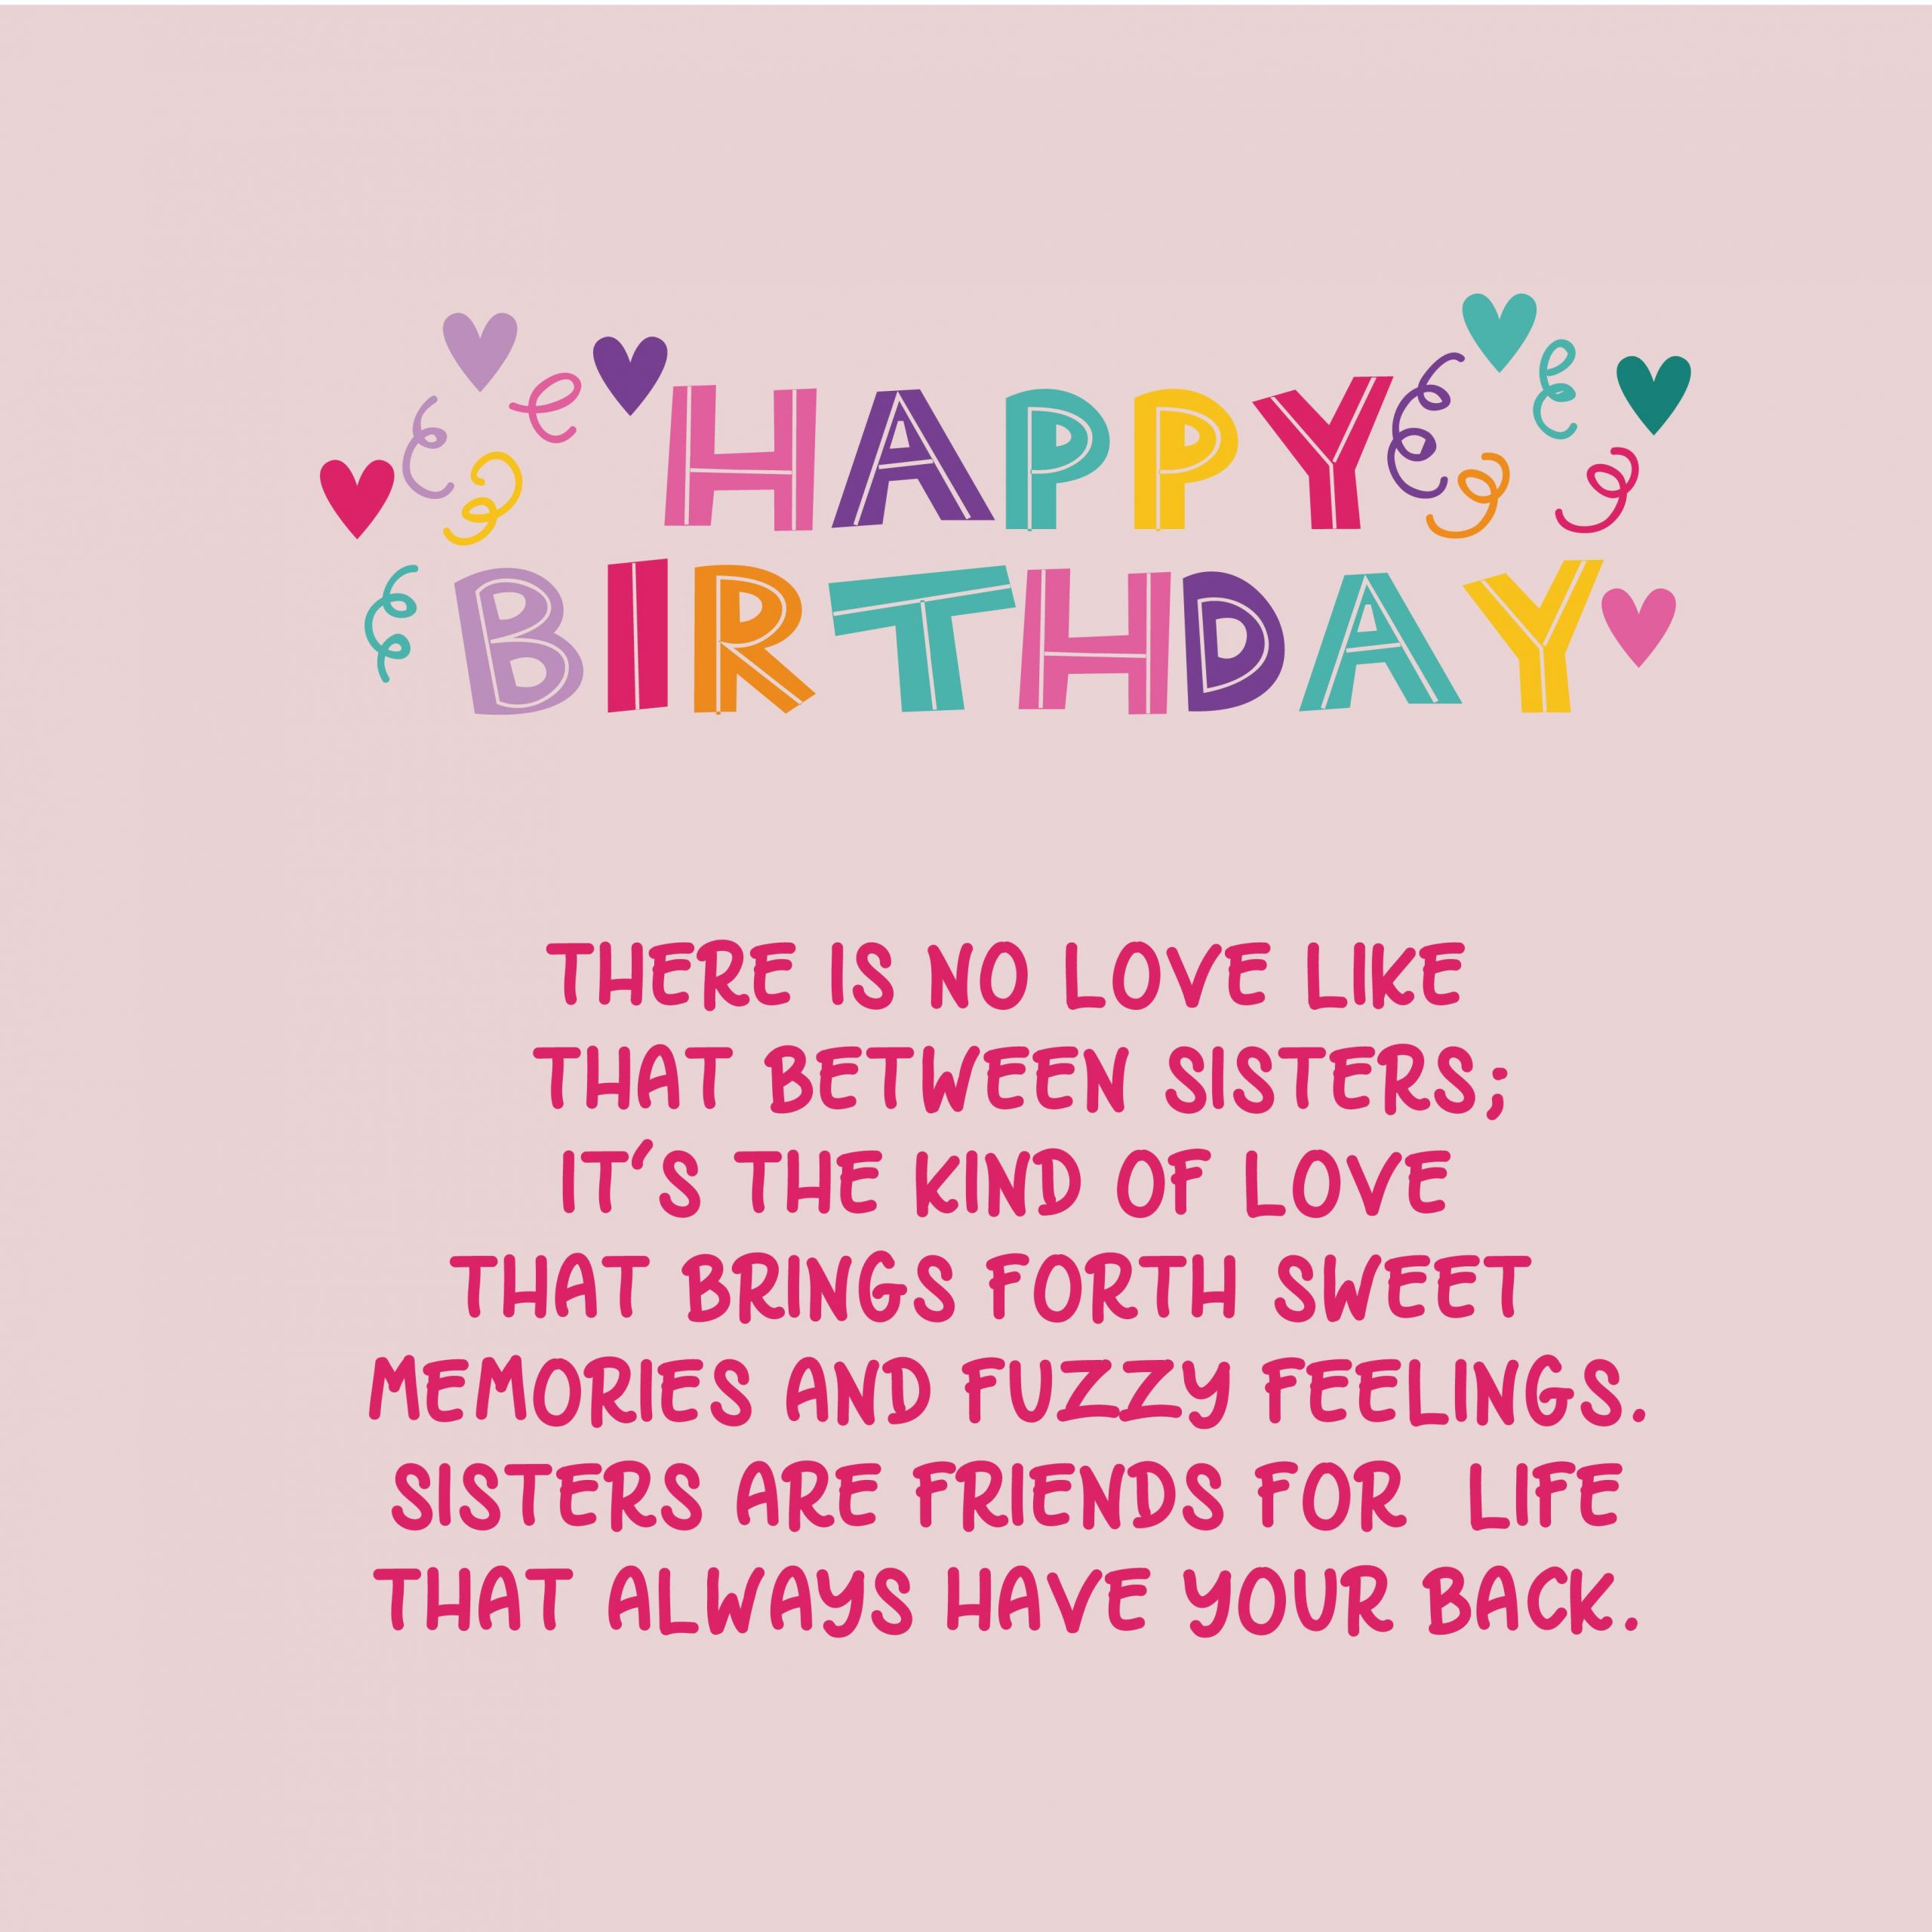 Happy Birthday Quotes For Sister  220 Birthday Wishes for Sister Top Happy Birthday Wishes